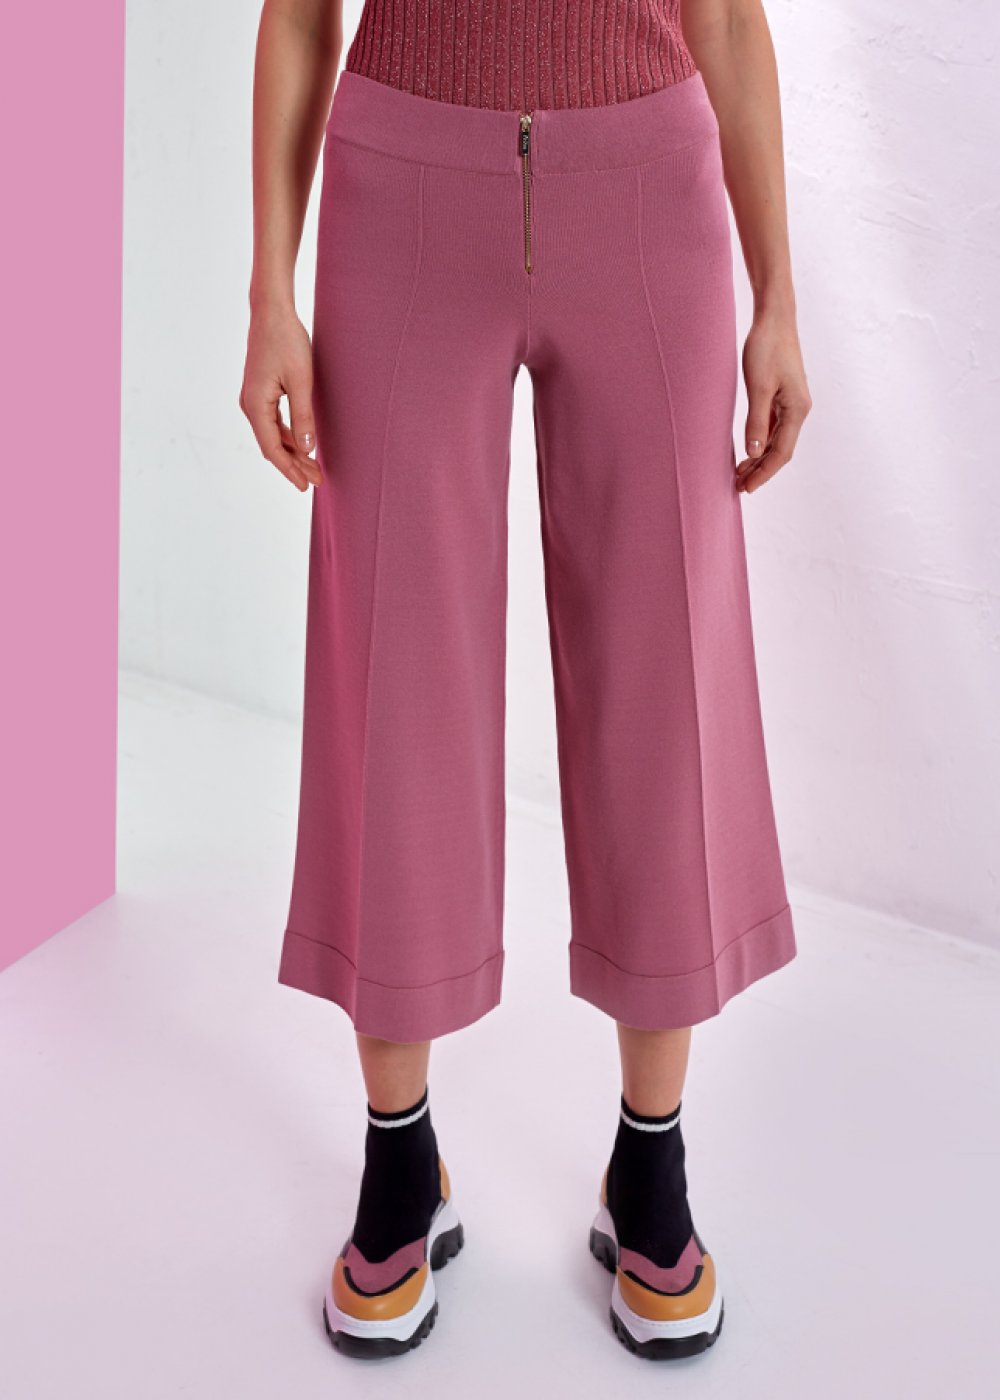 WIDE LEG PINK KNITTED PANT